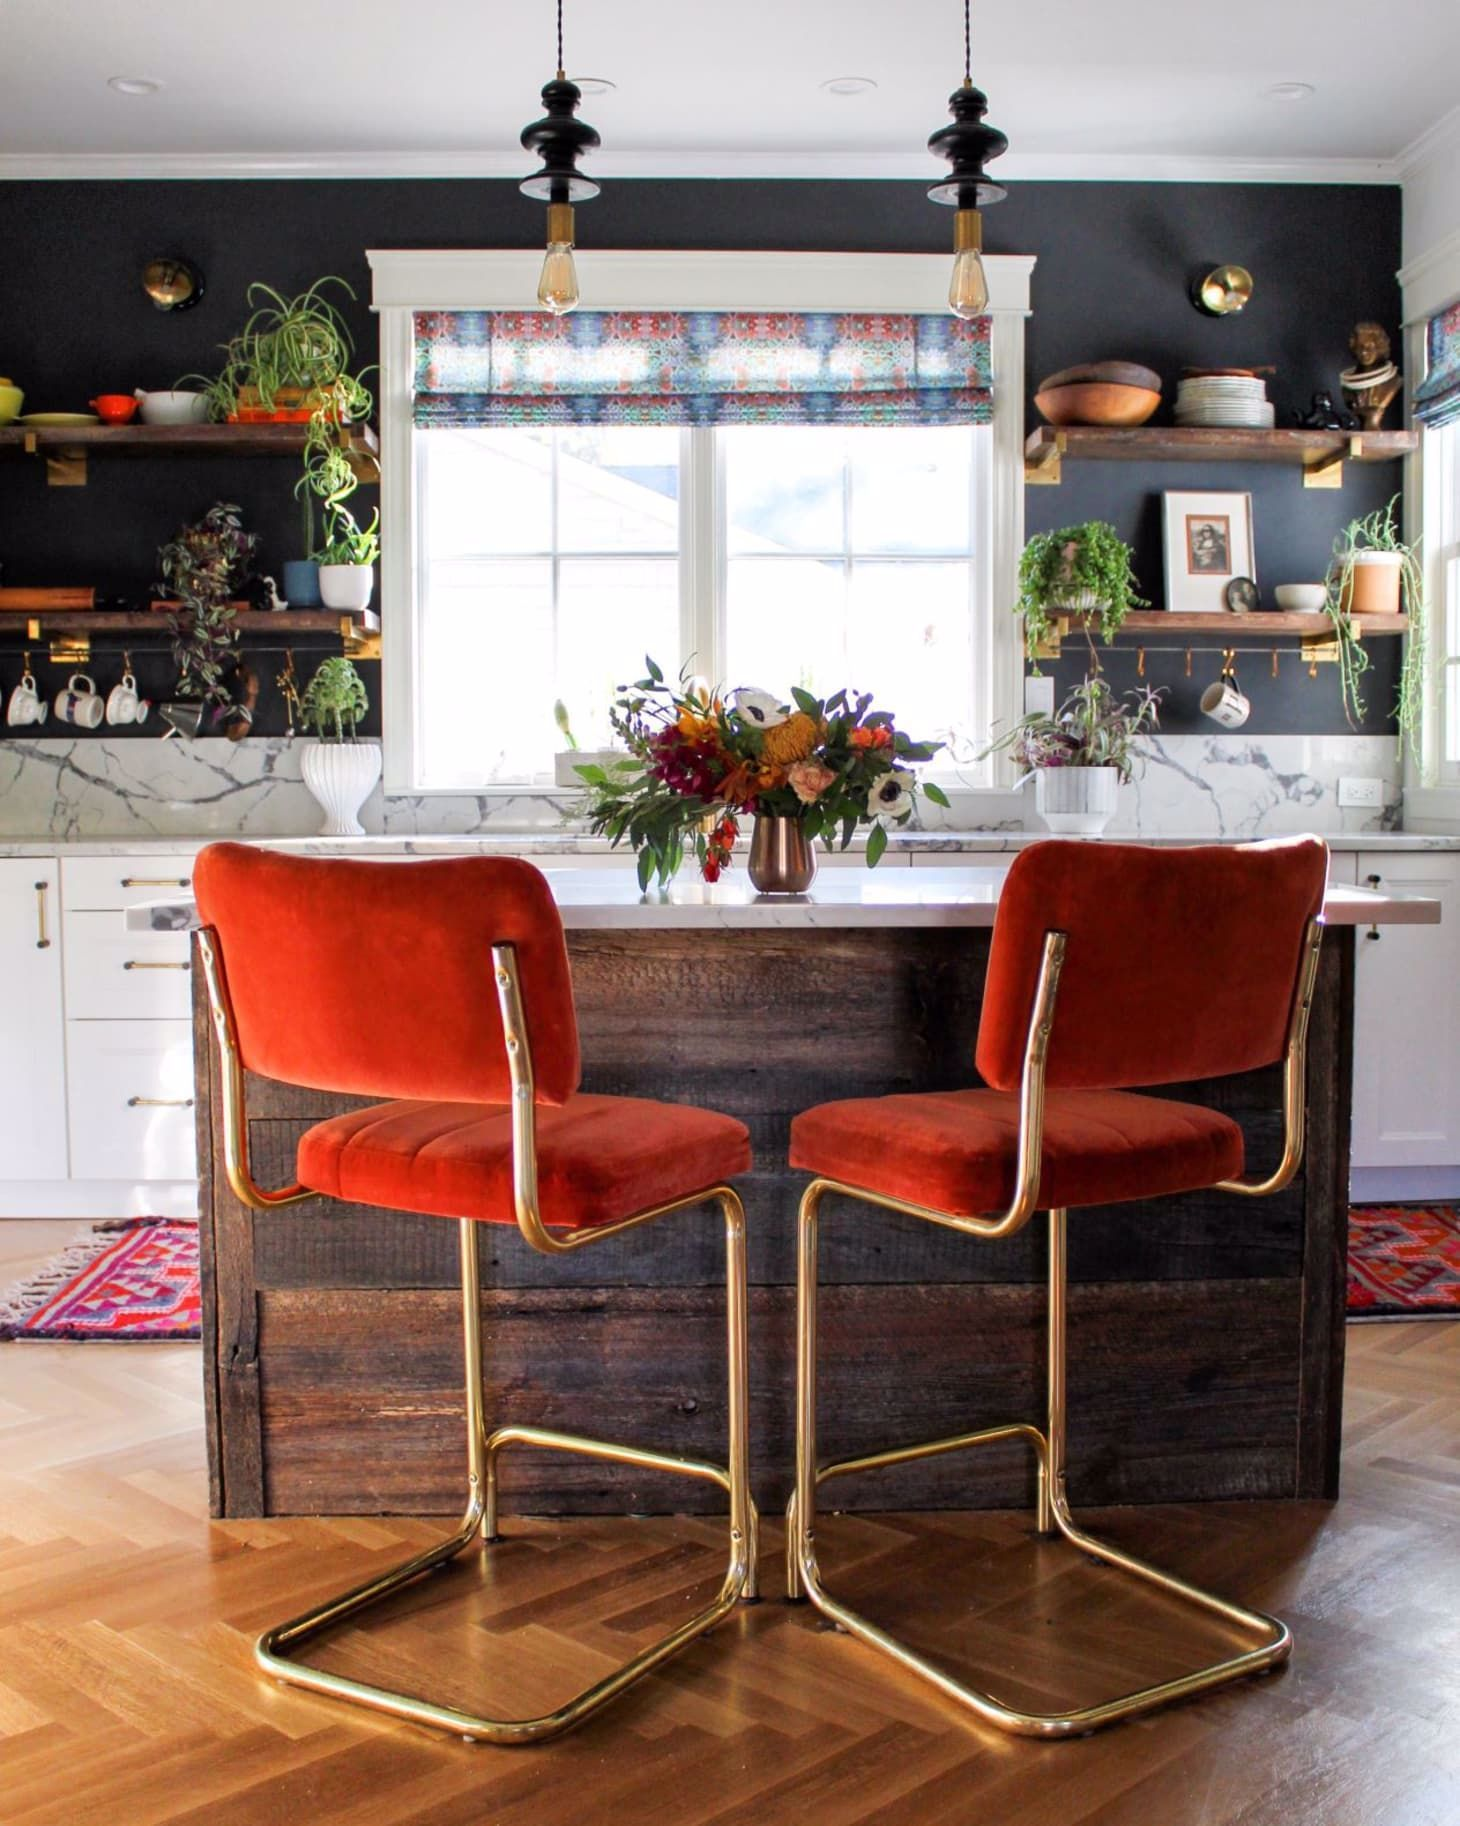 These Are The Decor Items You Should Never Throw Away According To Designers Apartment Therapy In 2020 Eclectic Home Eclectic Farmhouse Home